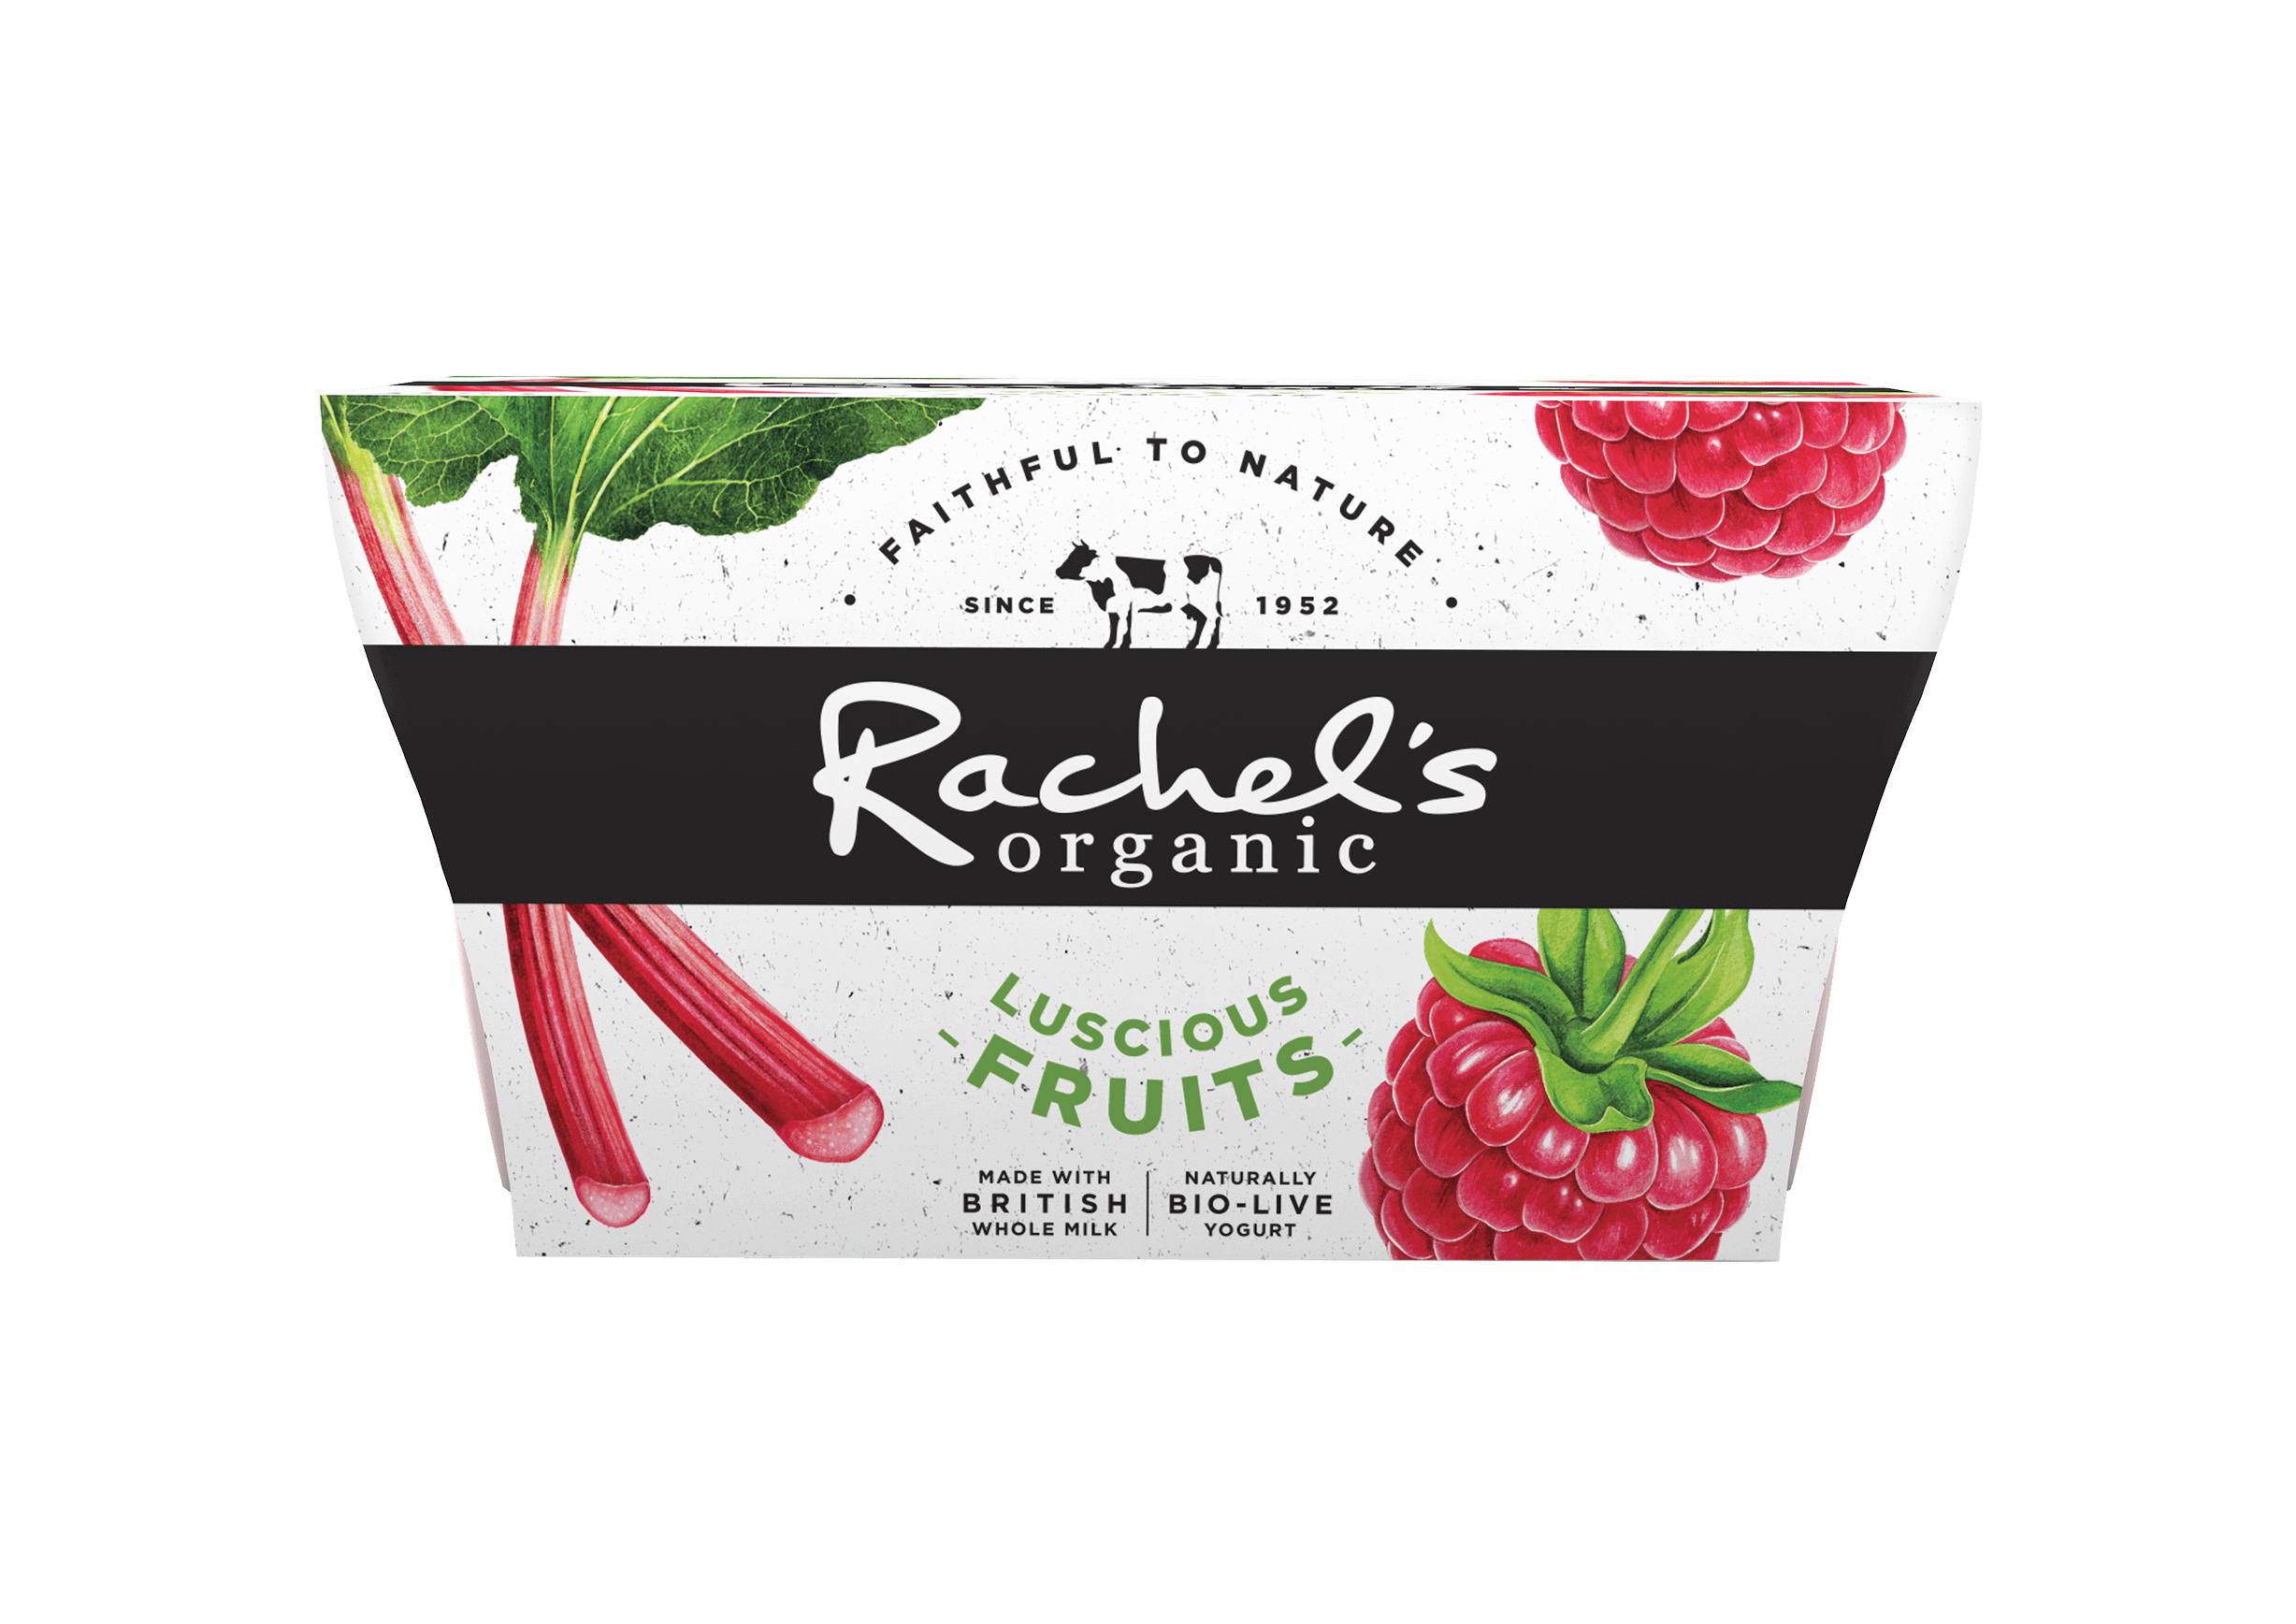 https://www.rachelsorganic.co.uk/wp-content/uploads/2019/12/5021638000021-3D-Rachels-Multipack-Rasp-Clip-4x110g.png